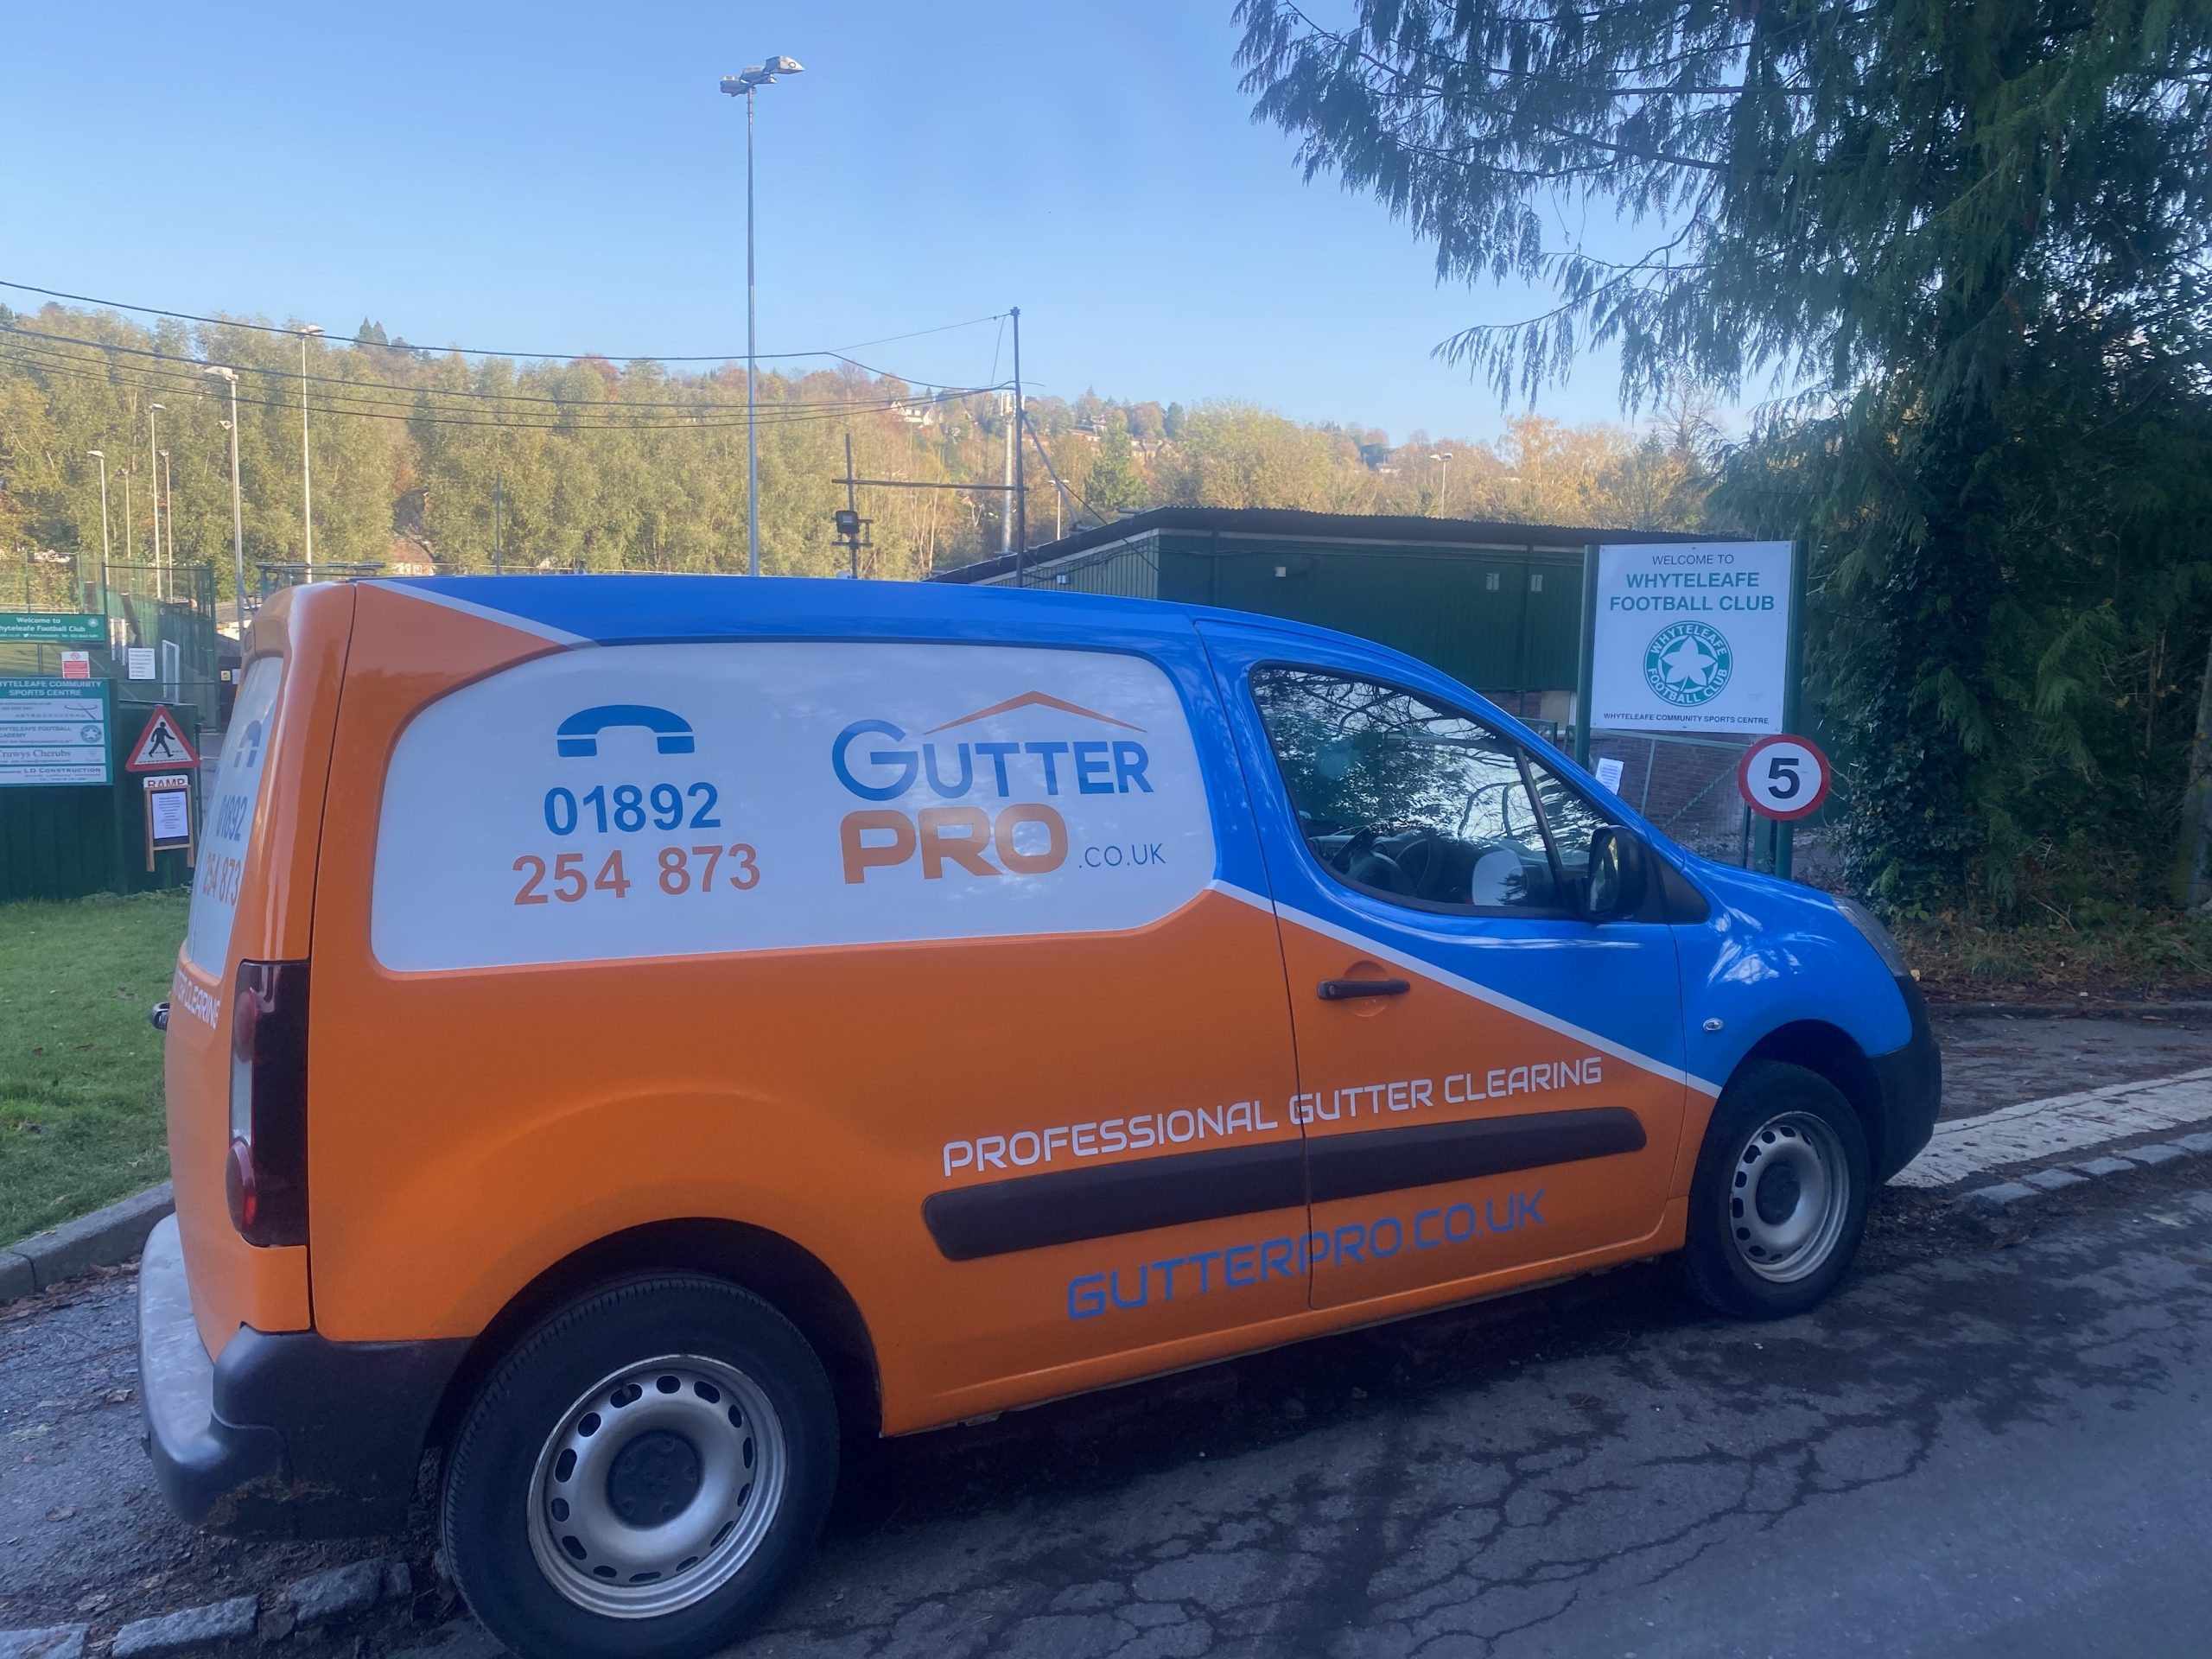 Gutter Cleaning Whyteleafe